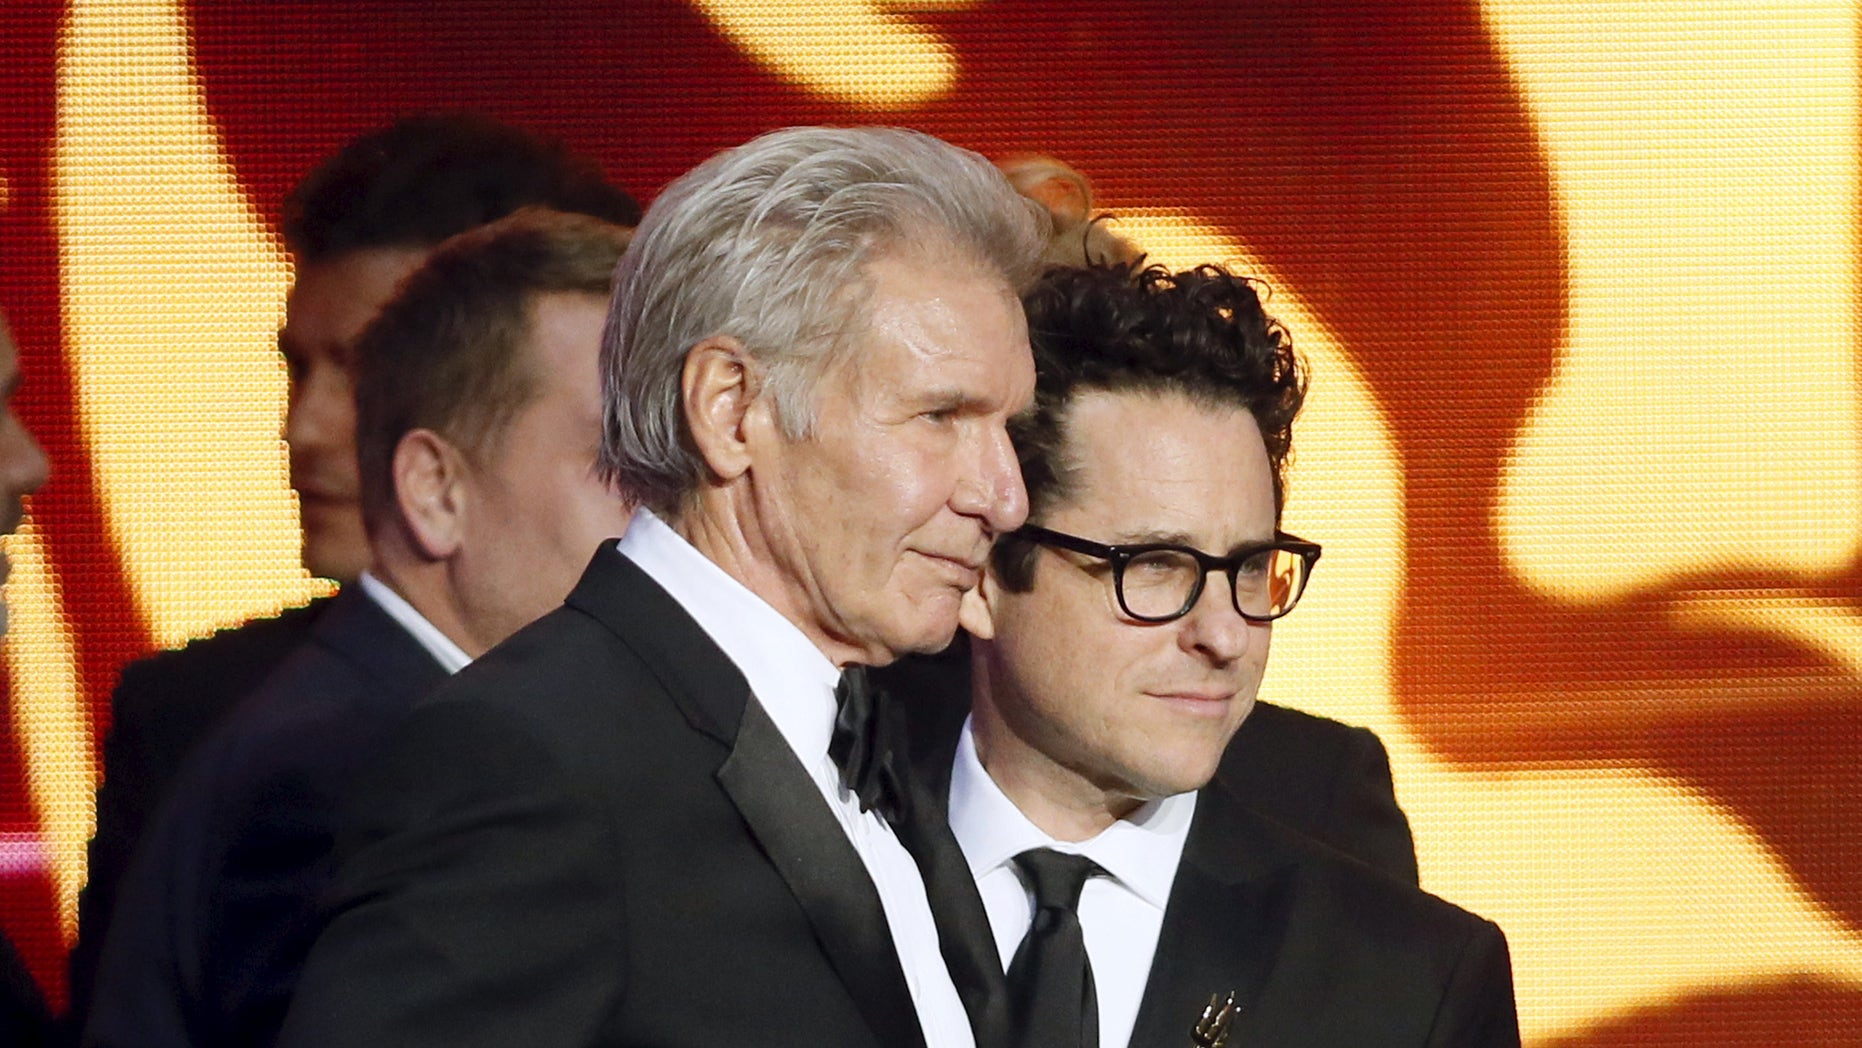 October 30, 2015. Actor Harrison Ford (L) poses with director J.J. Abrams during the British Academy Britannia Awards hosted by BAFTA Los Angeles in Beverly Hills, California.